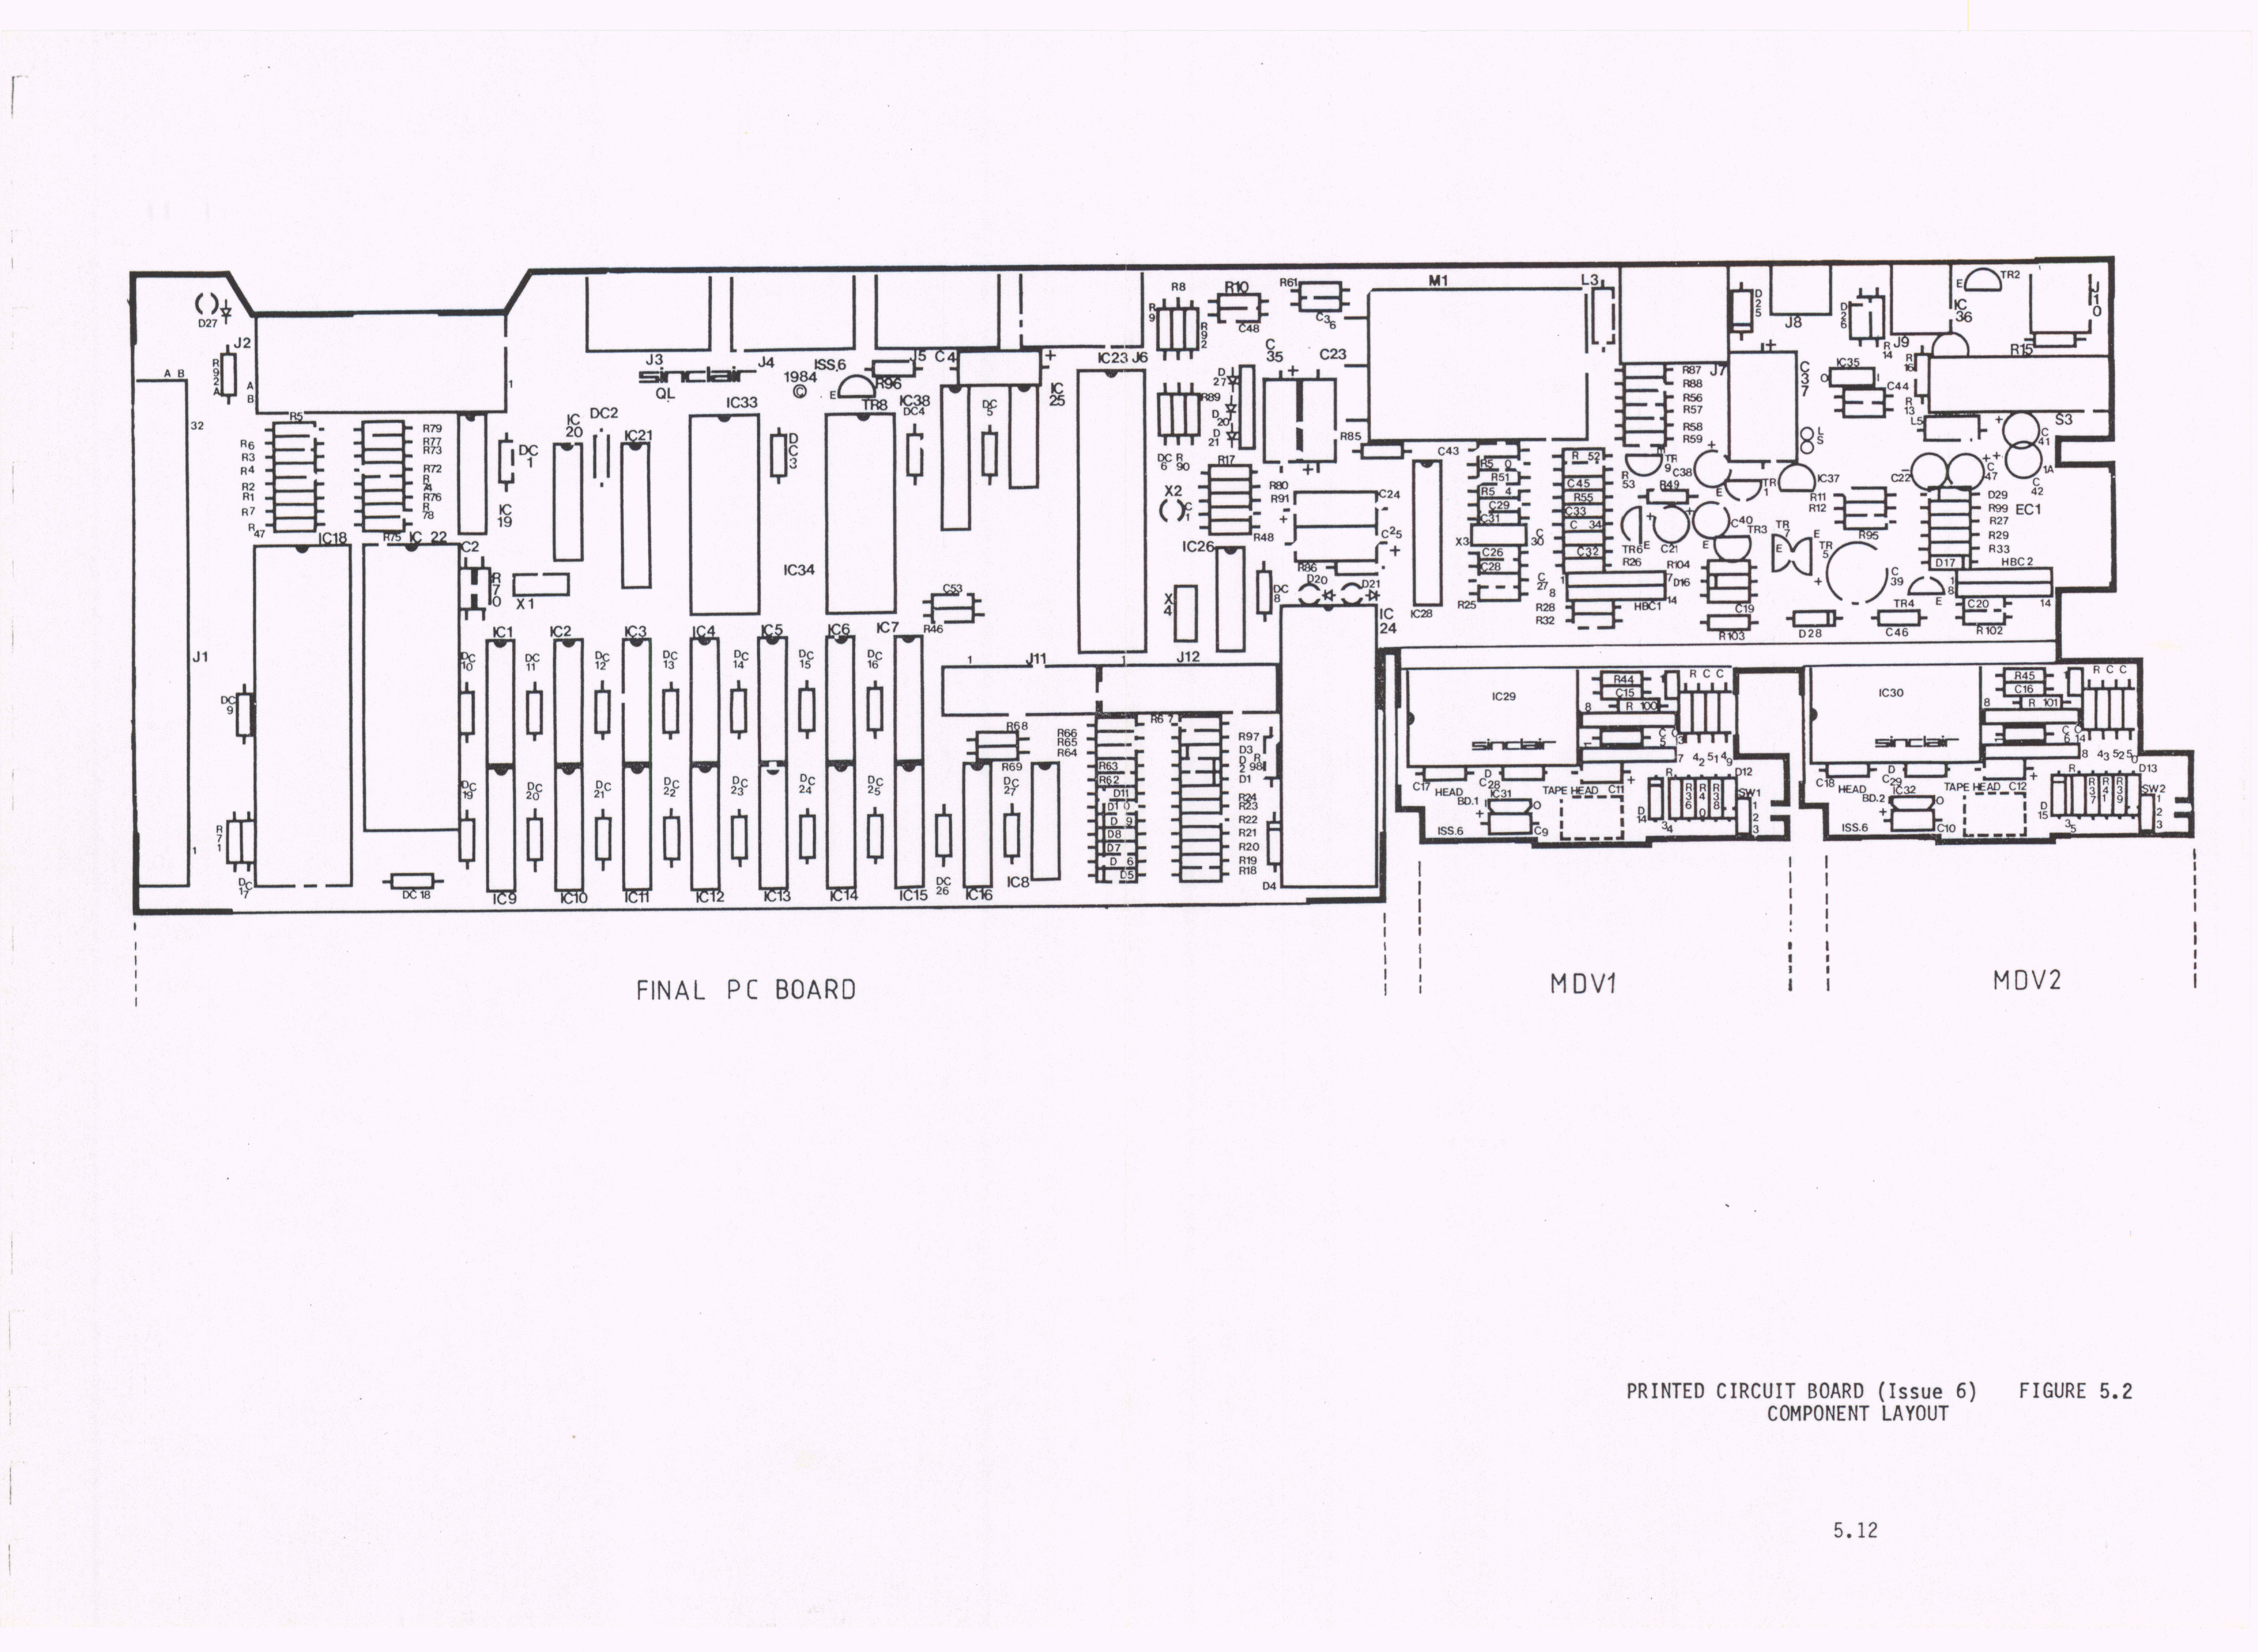 Sinclair Ql Documentation Pinout Further Scart To Vga Cable Diagram In Addition Wiring Circuit Issue 6 Mono 05mb Block Colour 28mb 99kb Pcb Component Layout 5 35mb